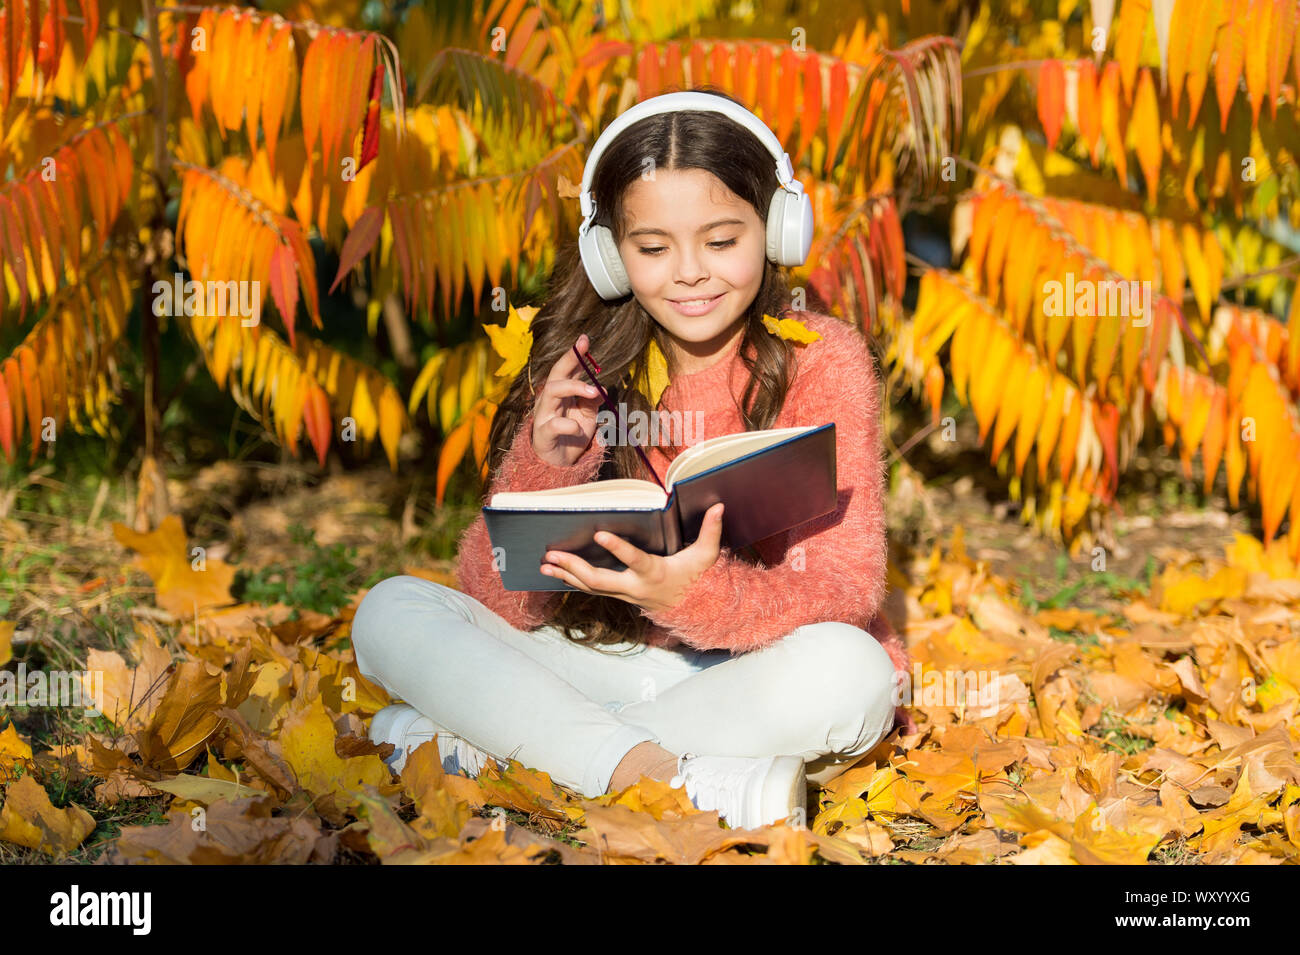 Girl Read Book On Autumn Day Little Child Enjoy Learning In